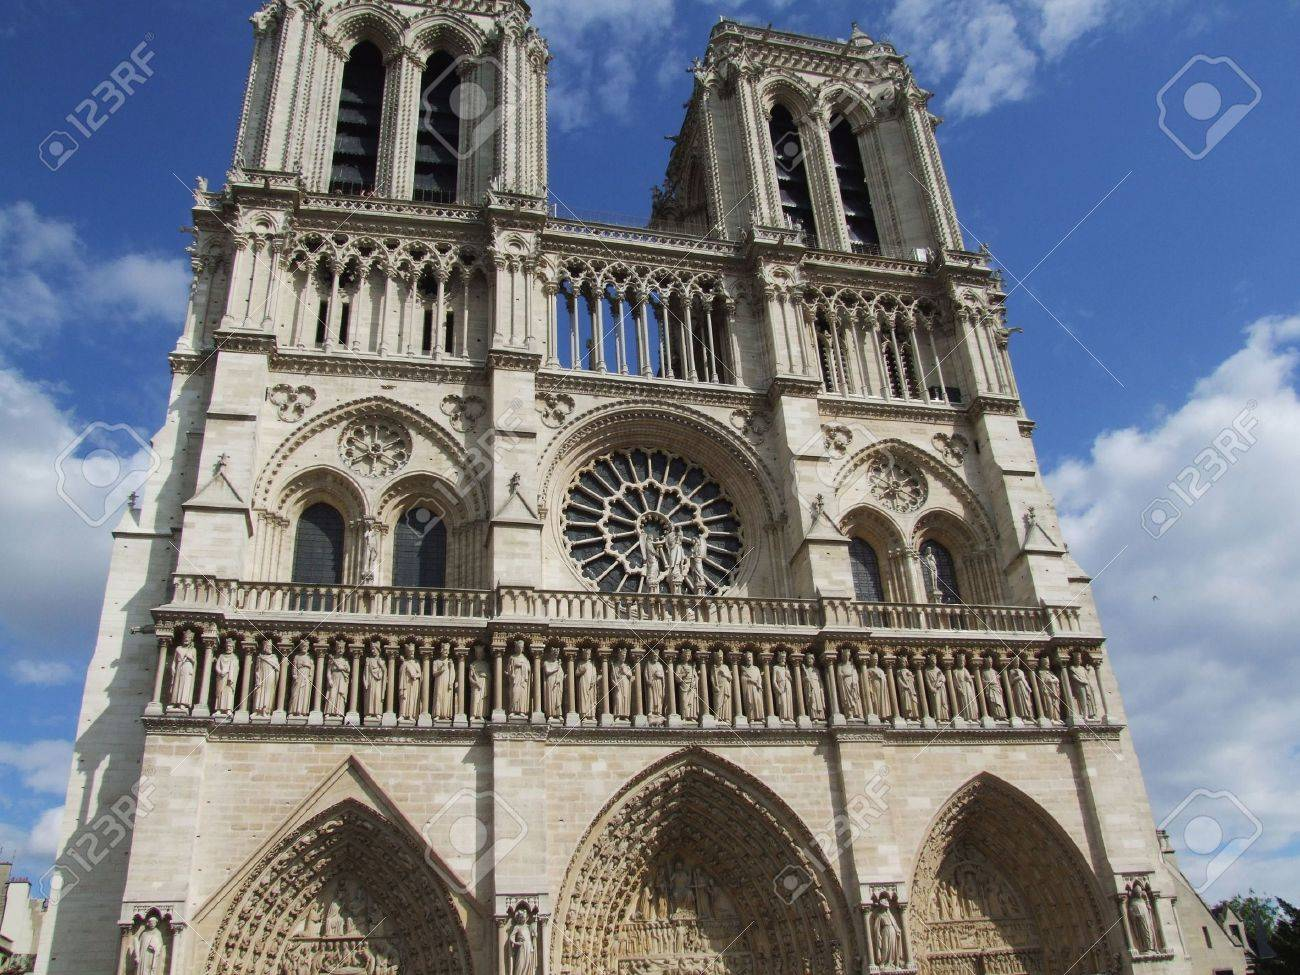 Notre Dame Cathedral facade in Paris (France) Stock Photo - 3920295